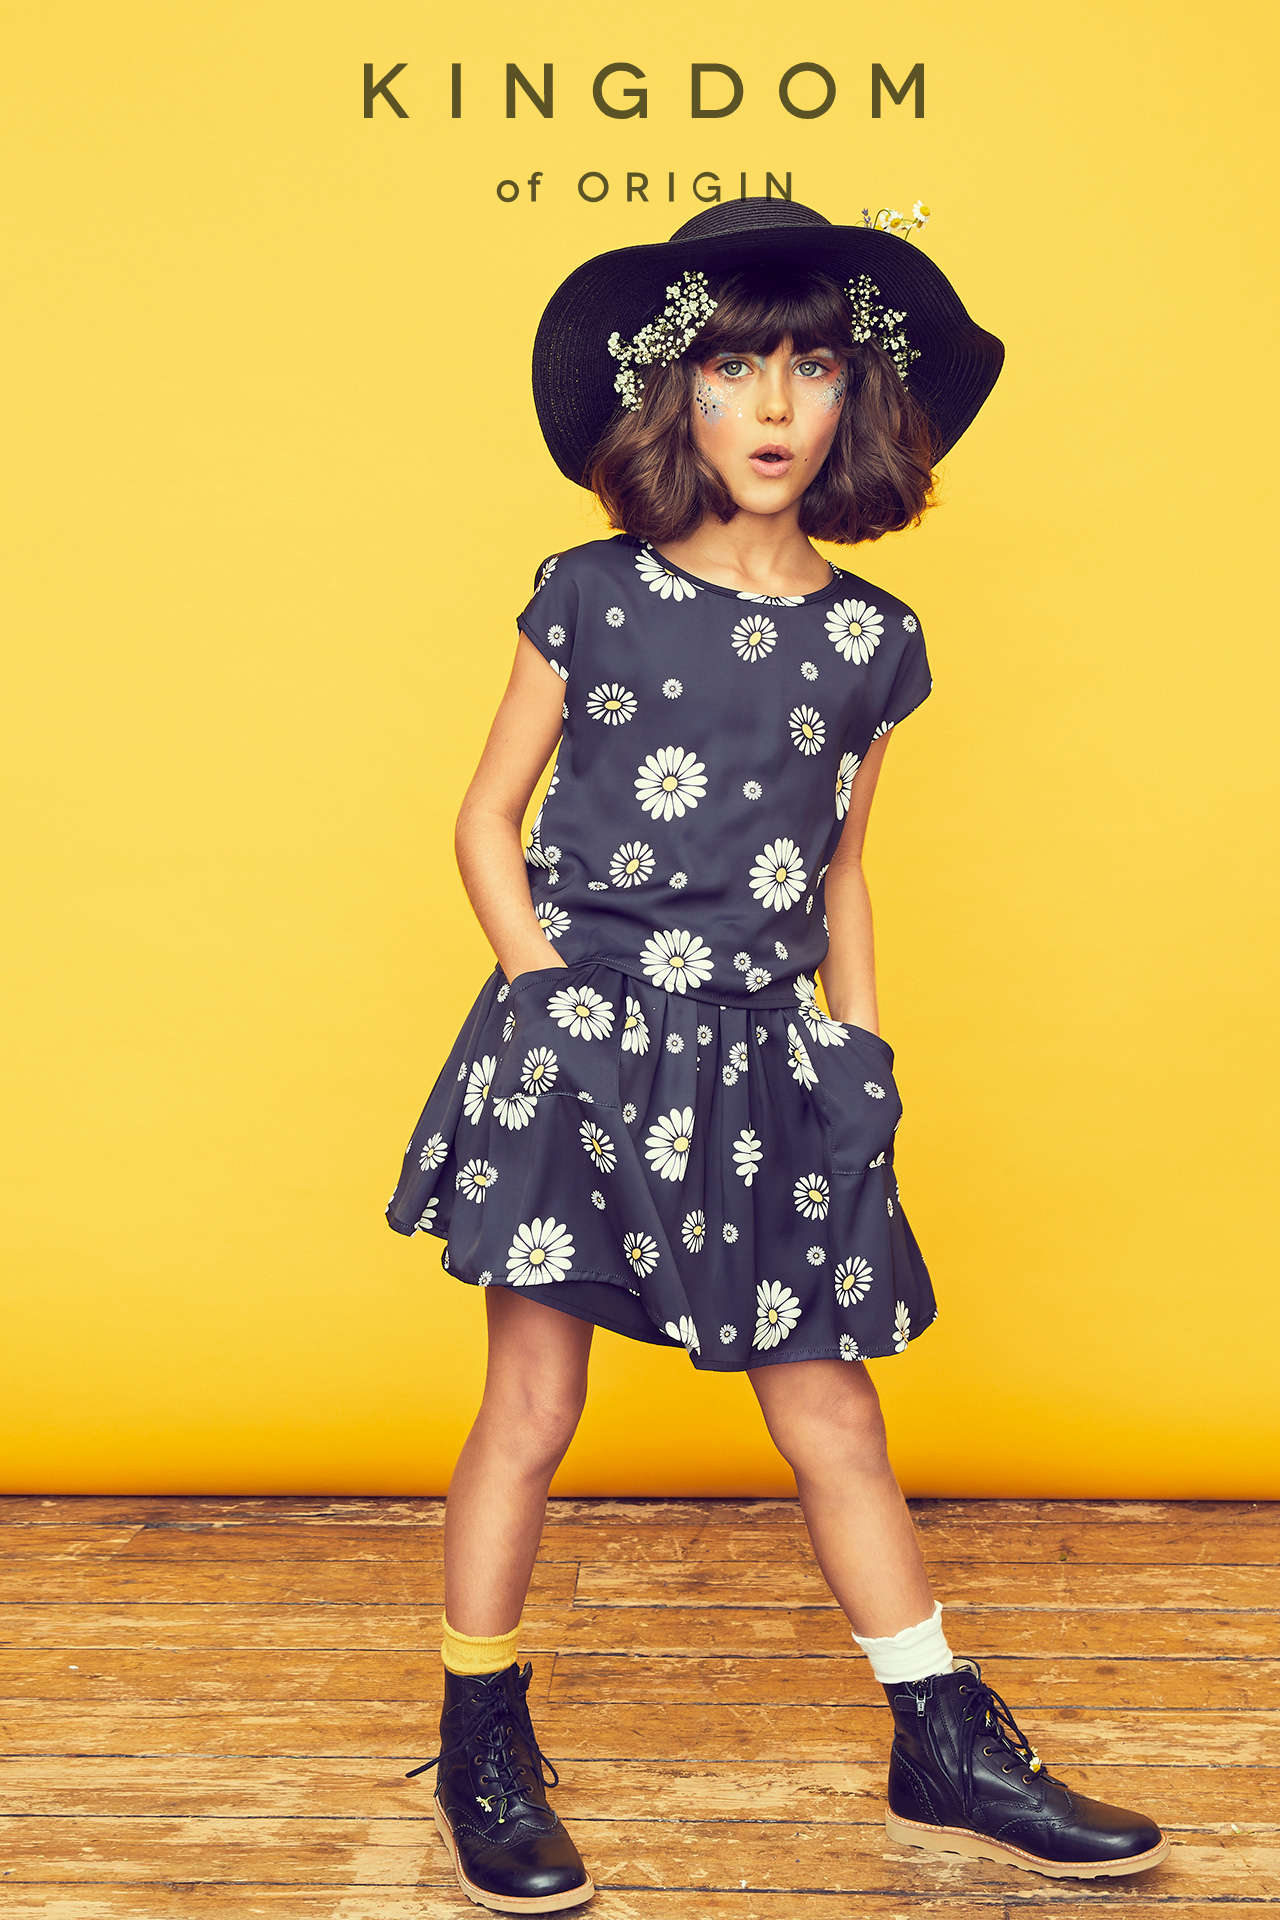 KOO girl kids fashion dancing in hat and floral boho dress